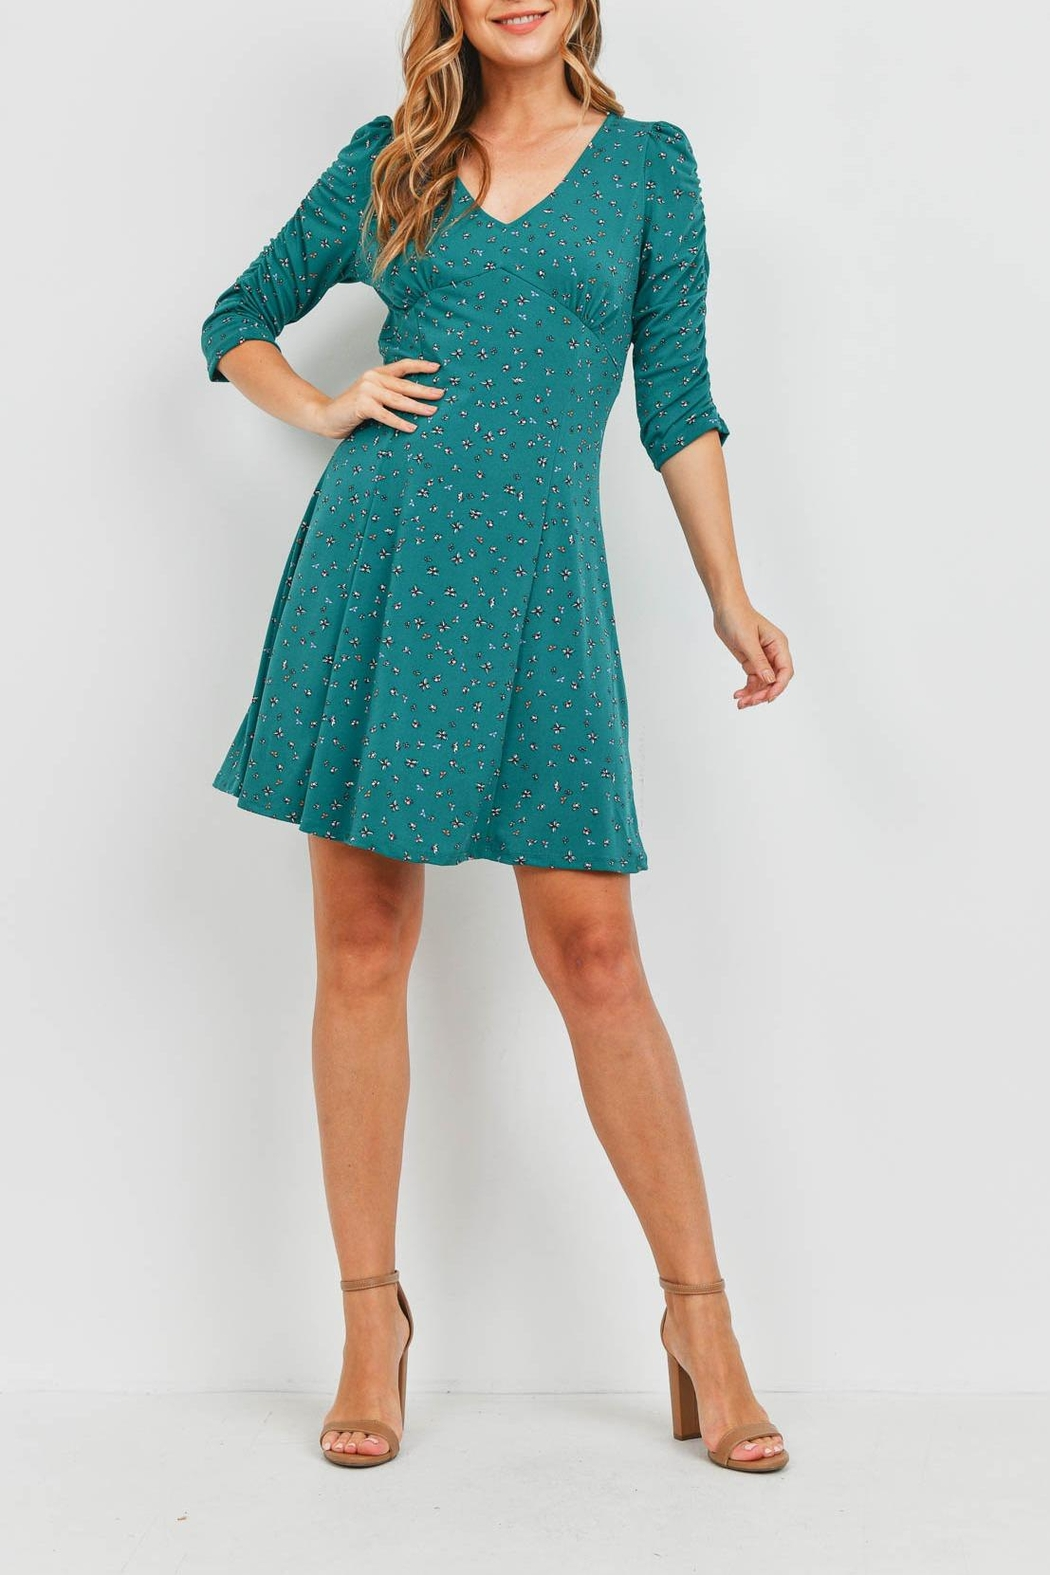 Riah Fashion Forest Green Dress - Side Cropped Image